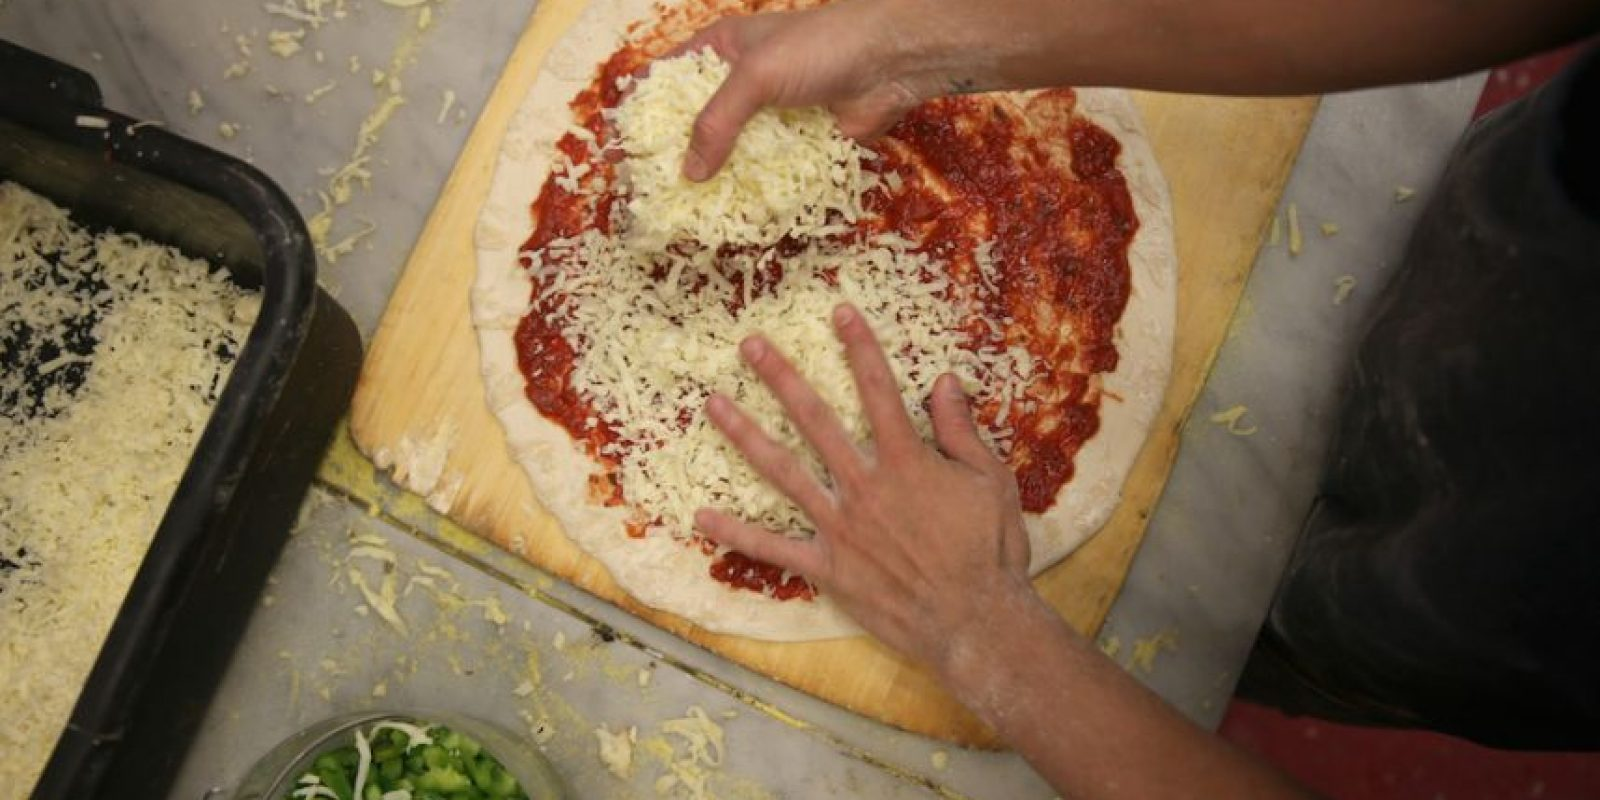 Colocar los ingredientes, se recomienda que sea pepperoni. Foto: Getty Images